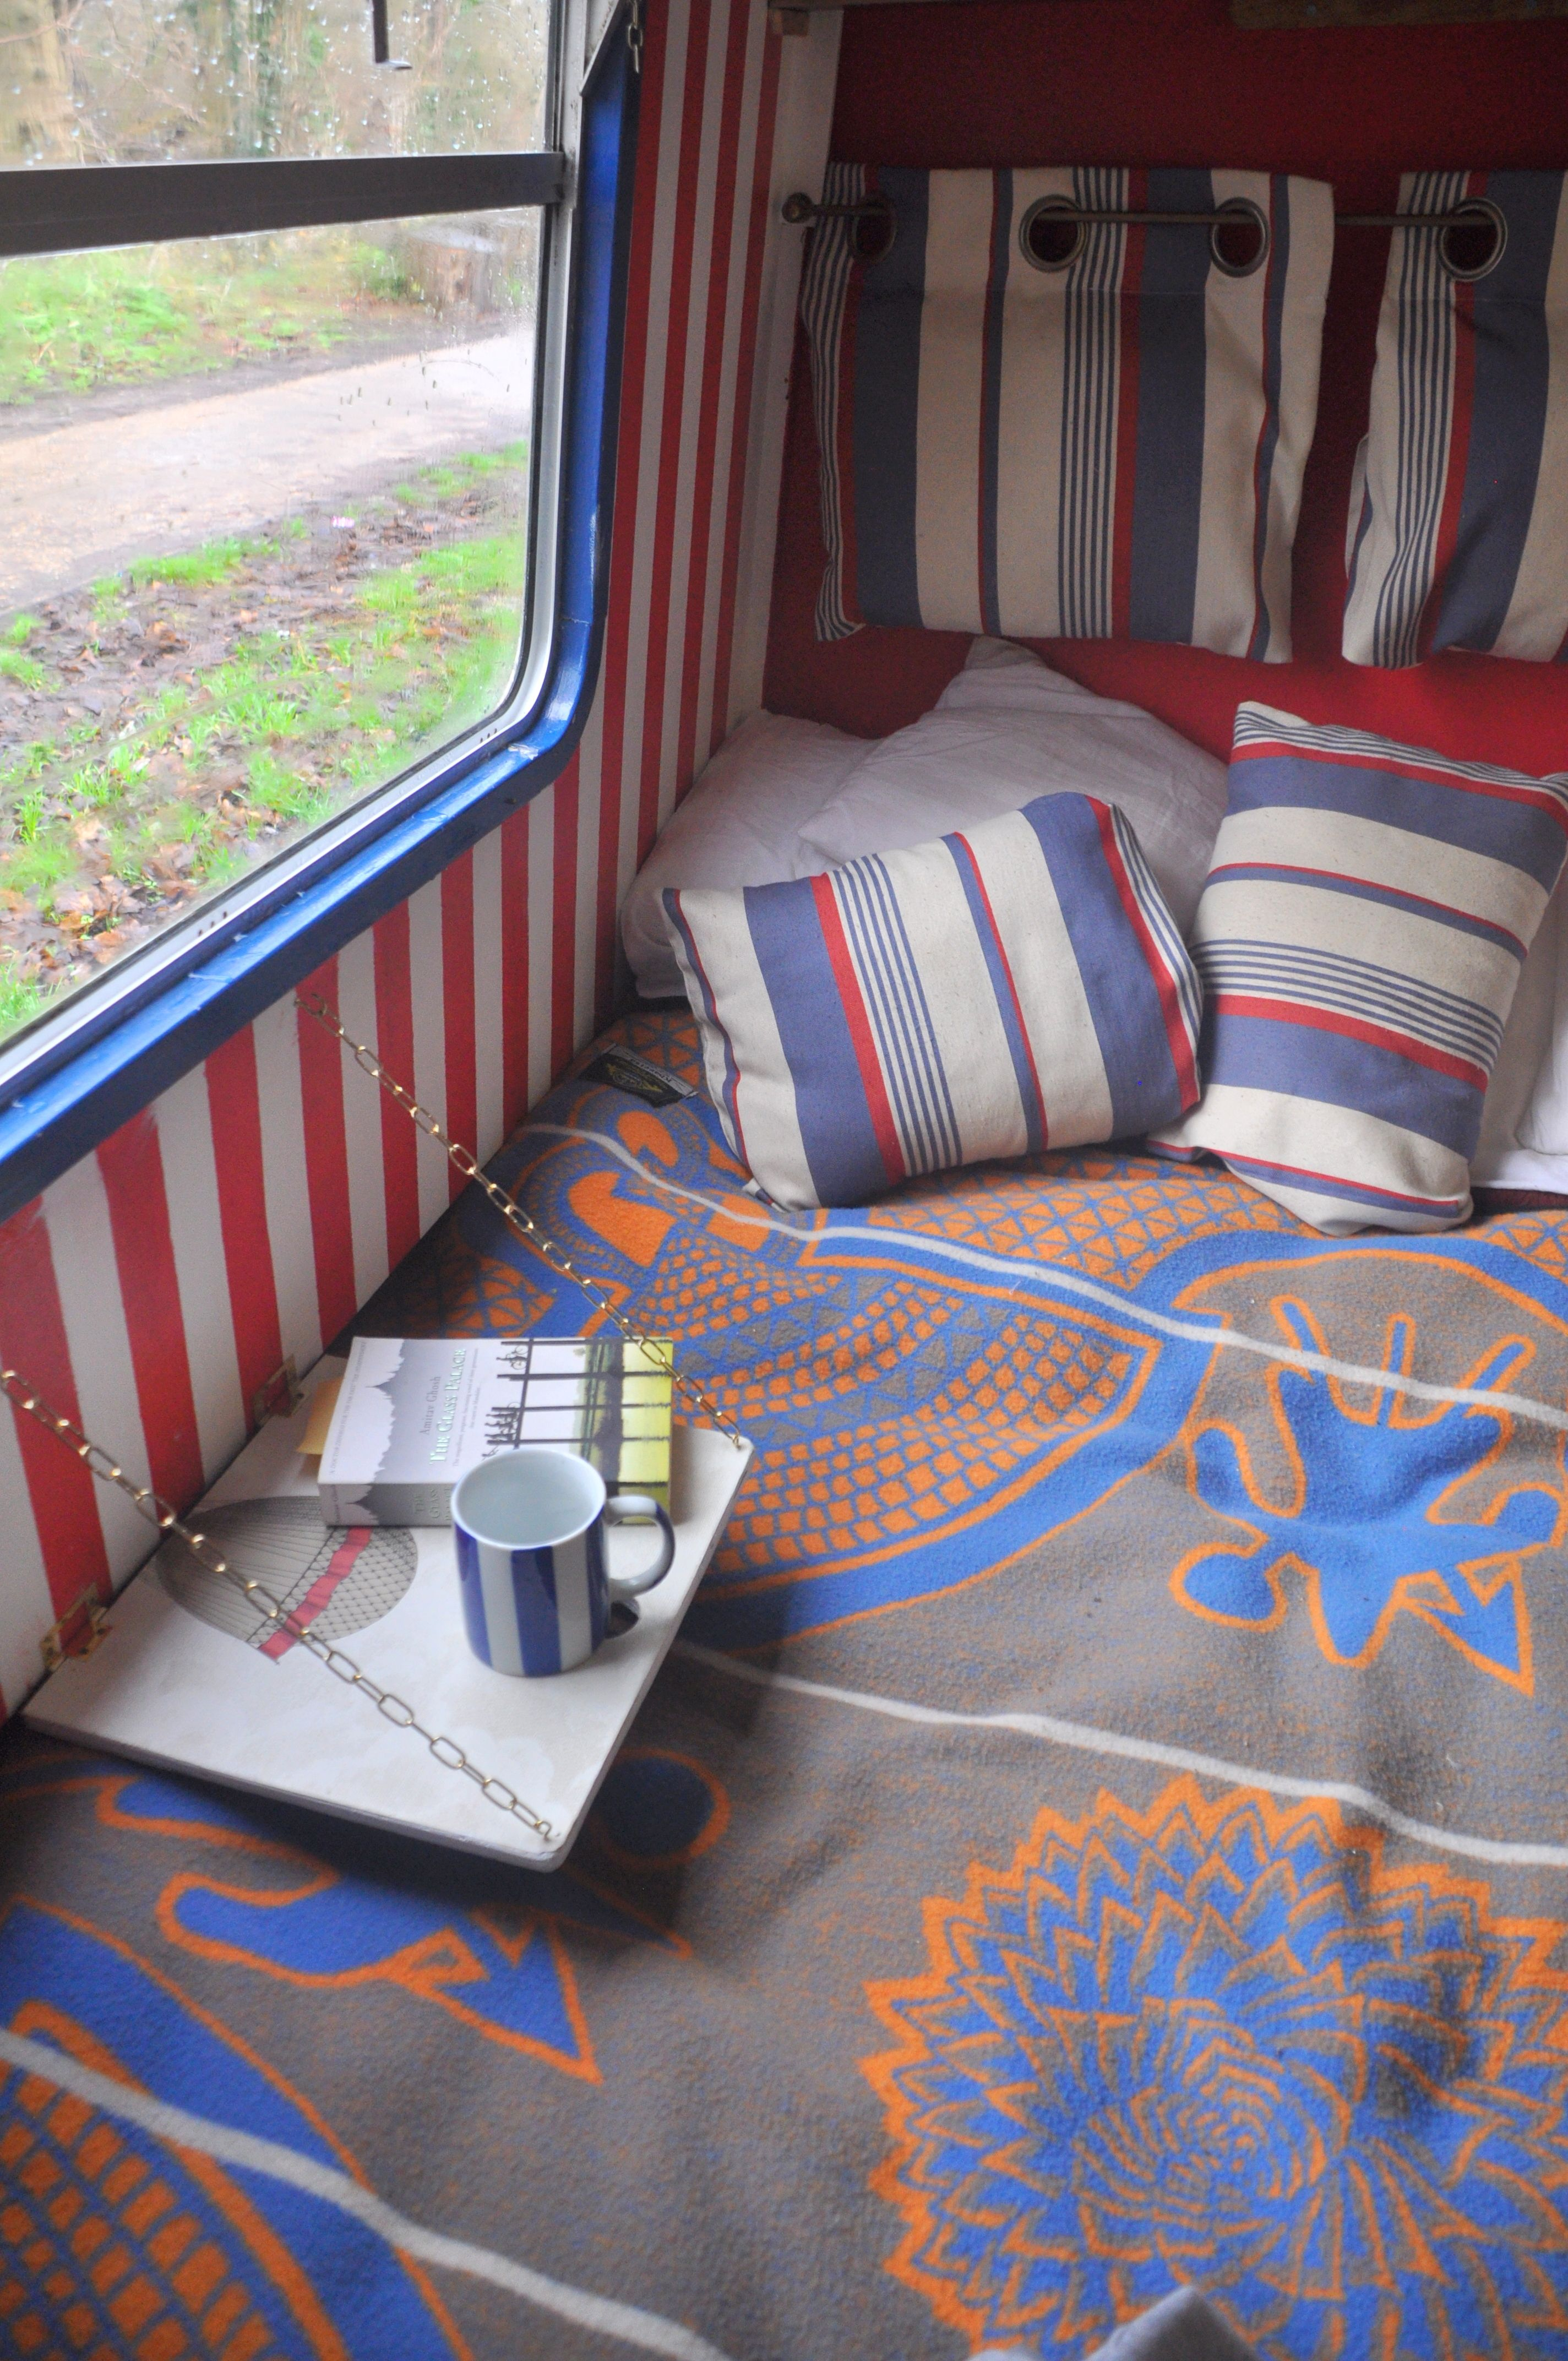 What a great place for reading on a rainy day!